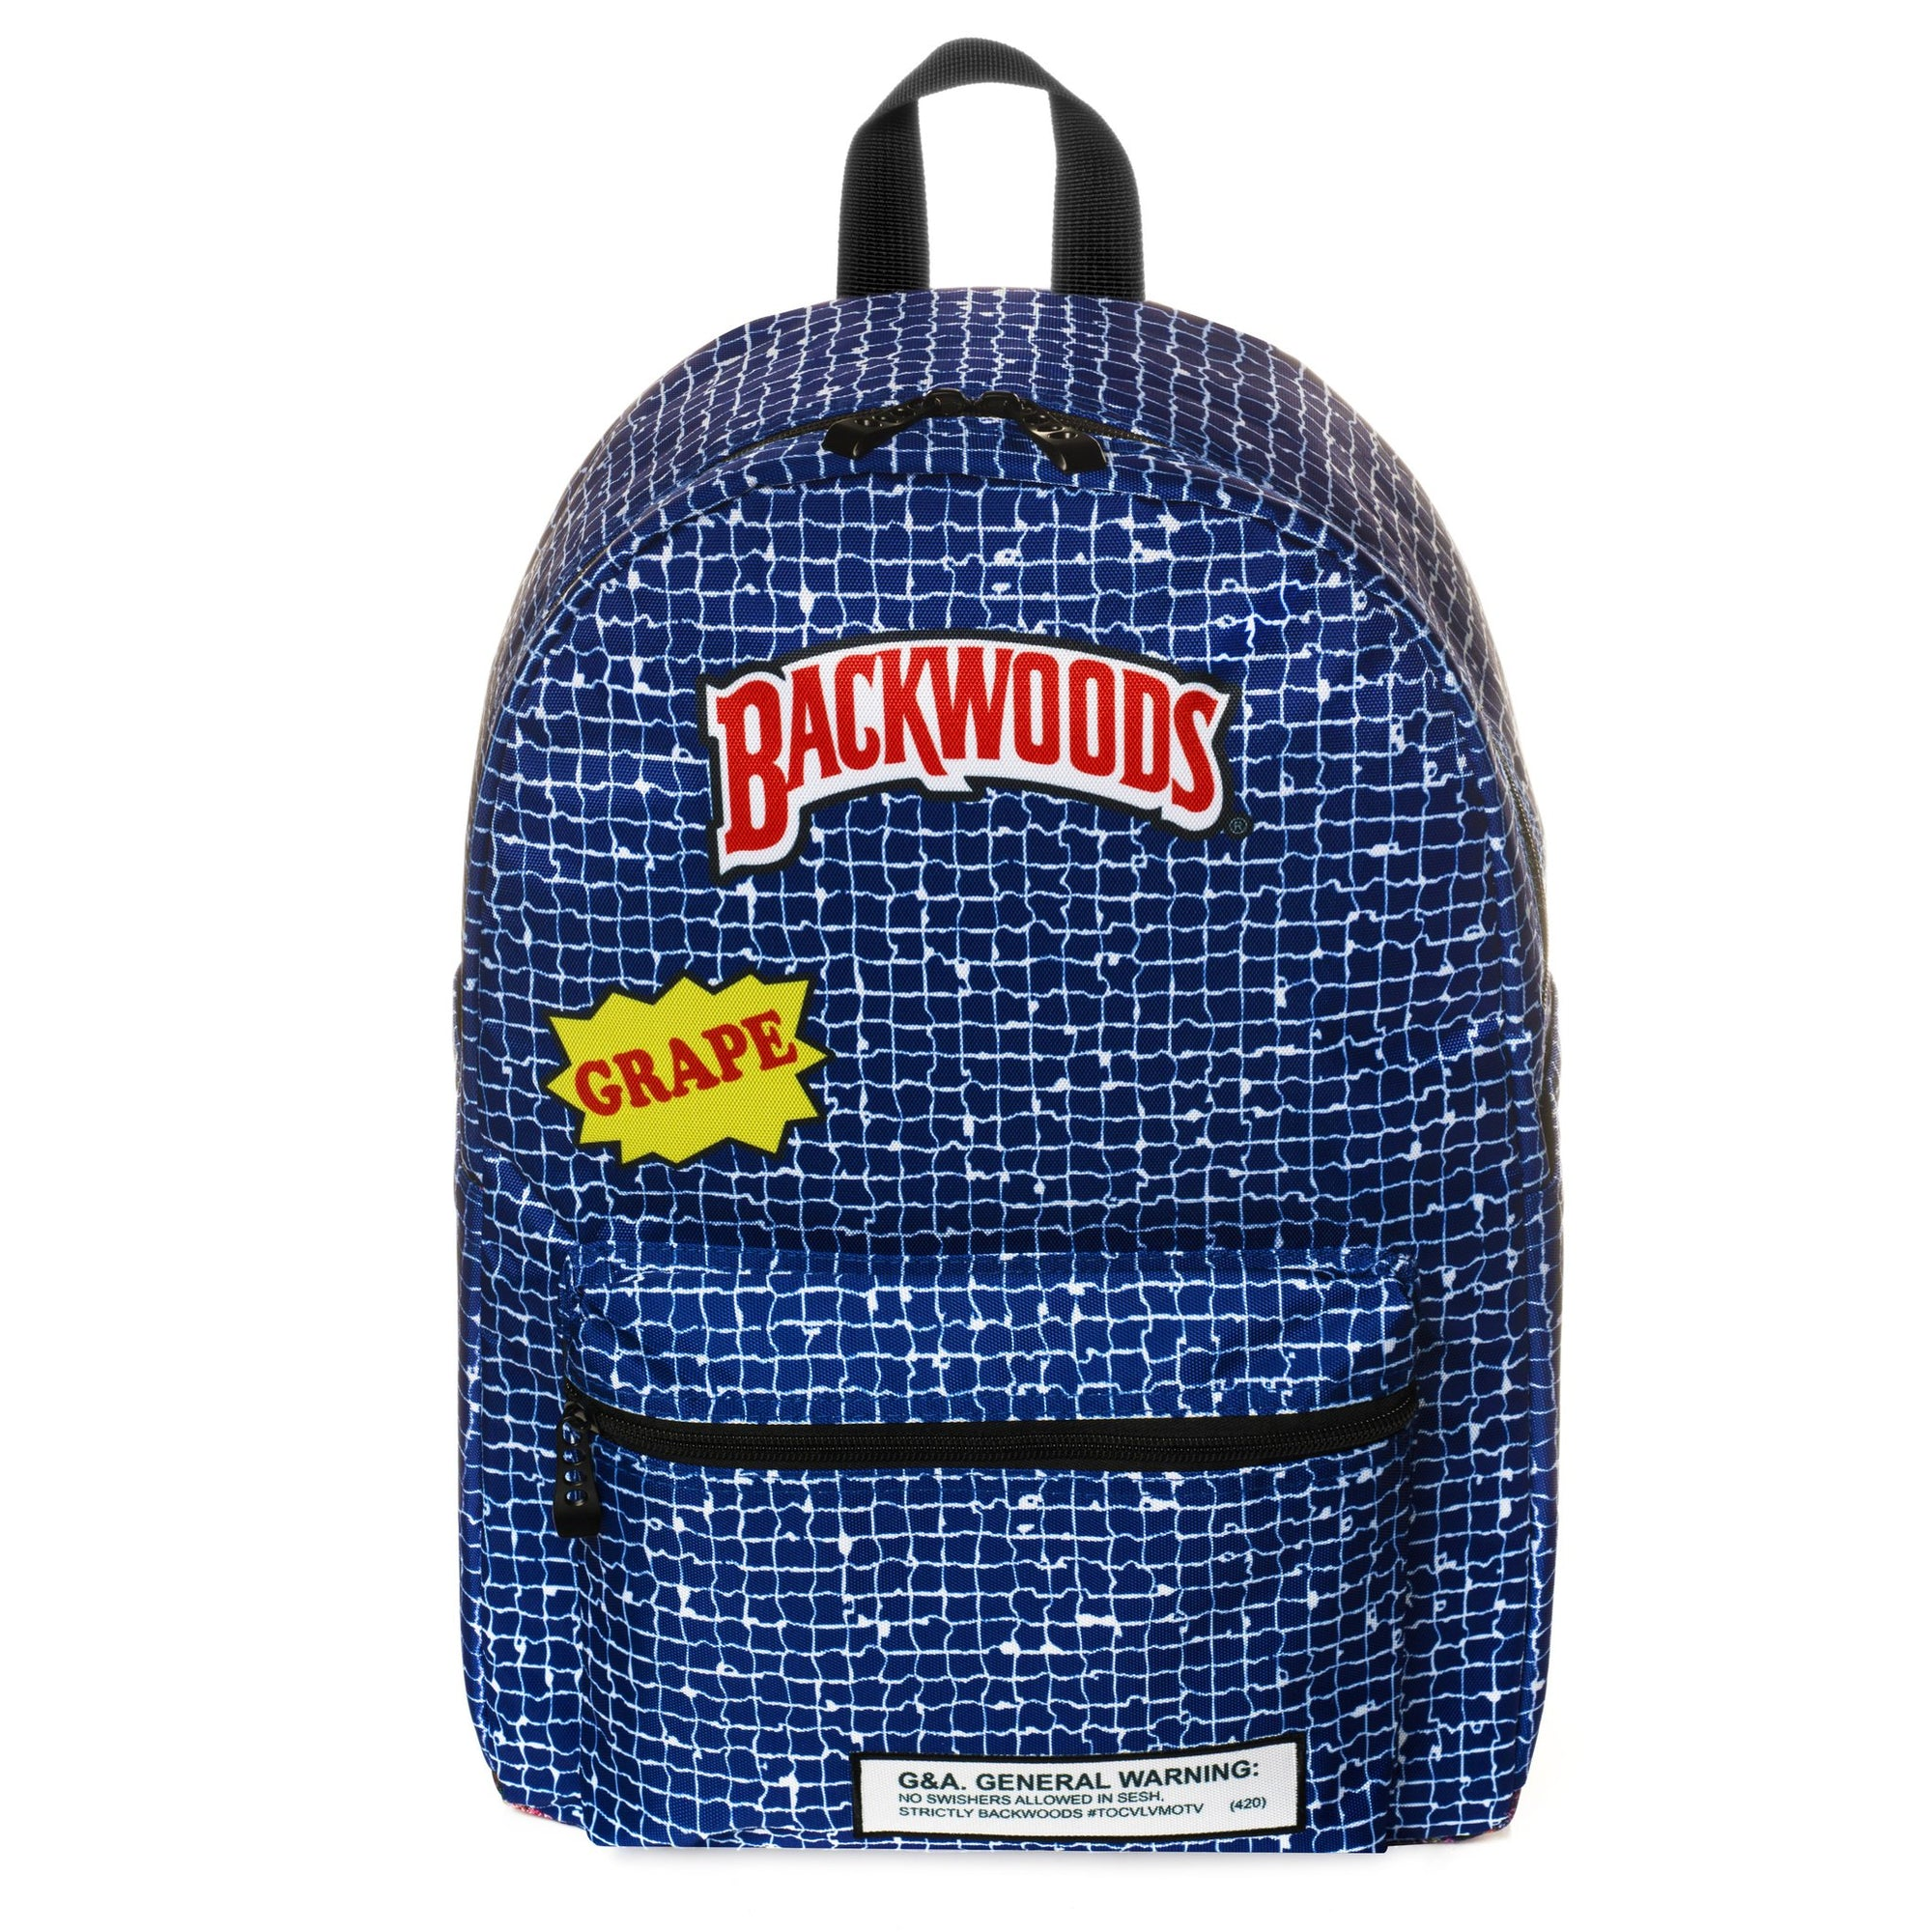 Grape Backwoods Backpack